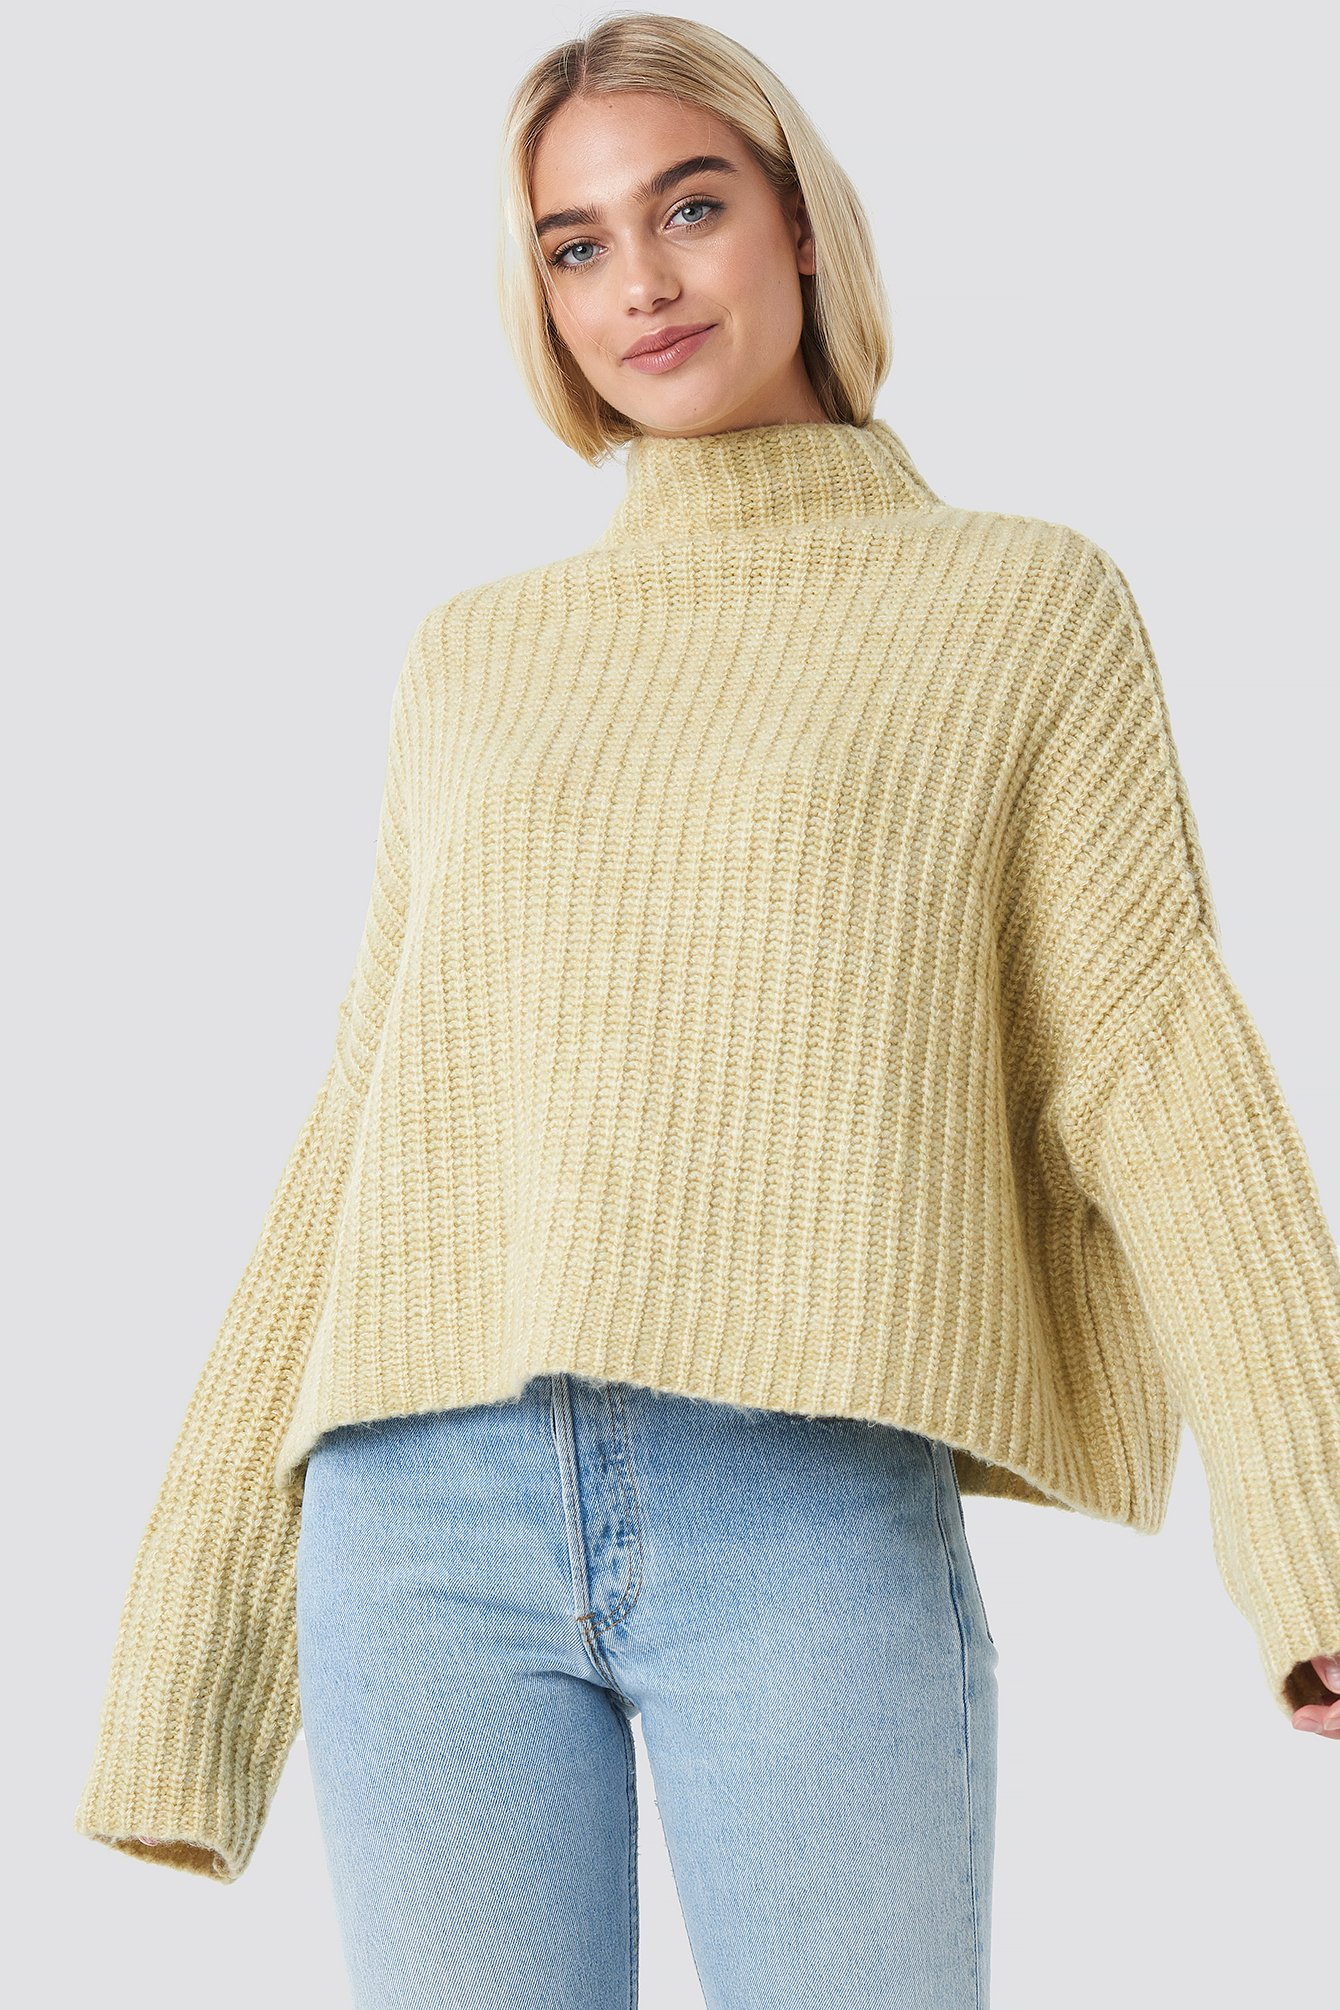 na-kd trend -  Boxy High Neck Knitted Sweater - Yellow